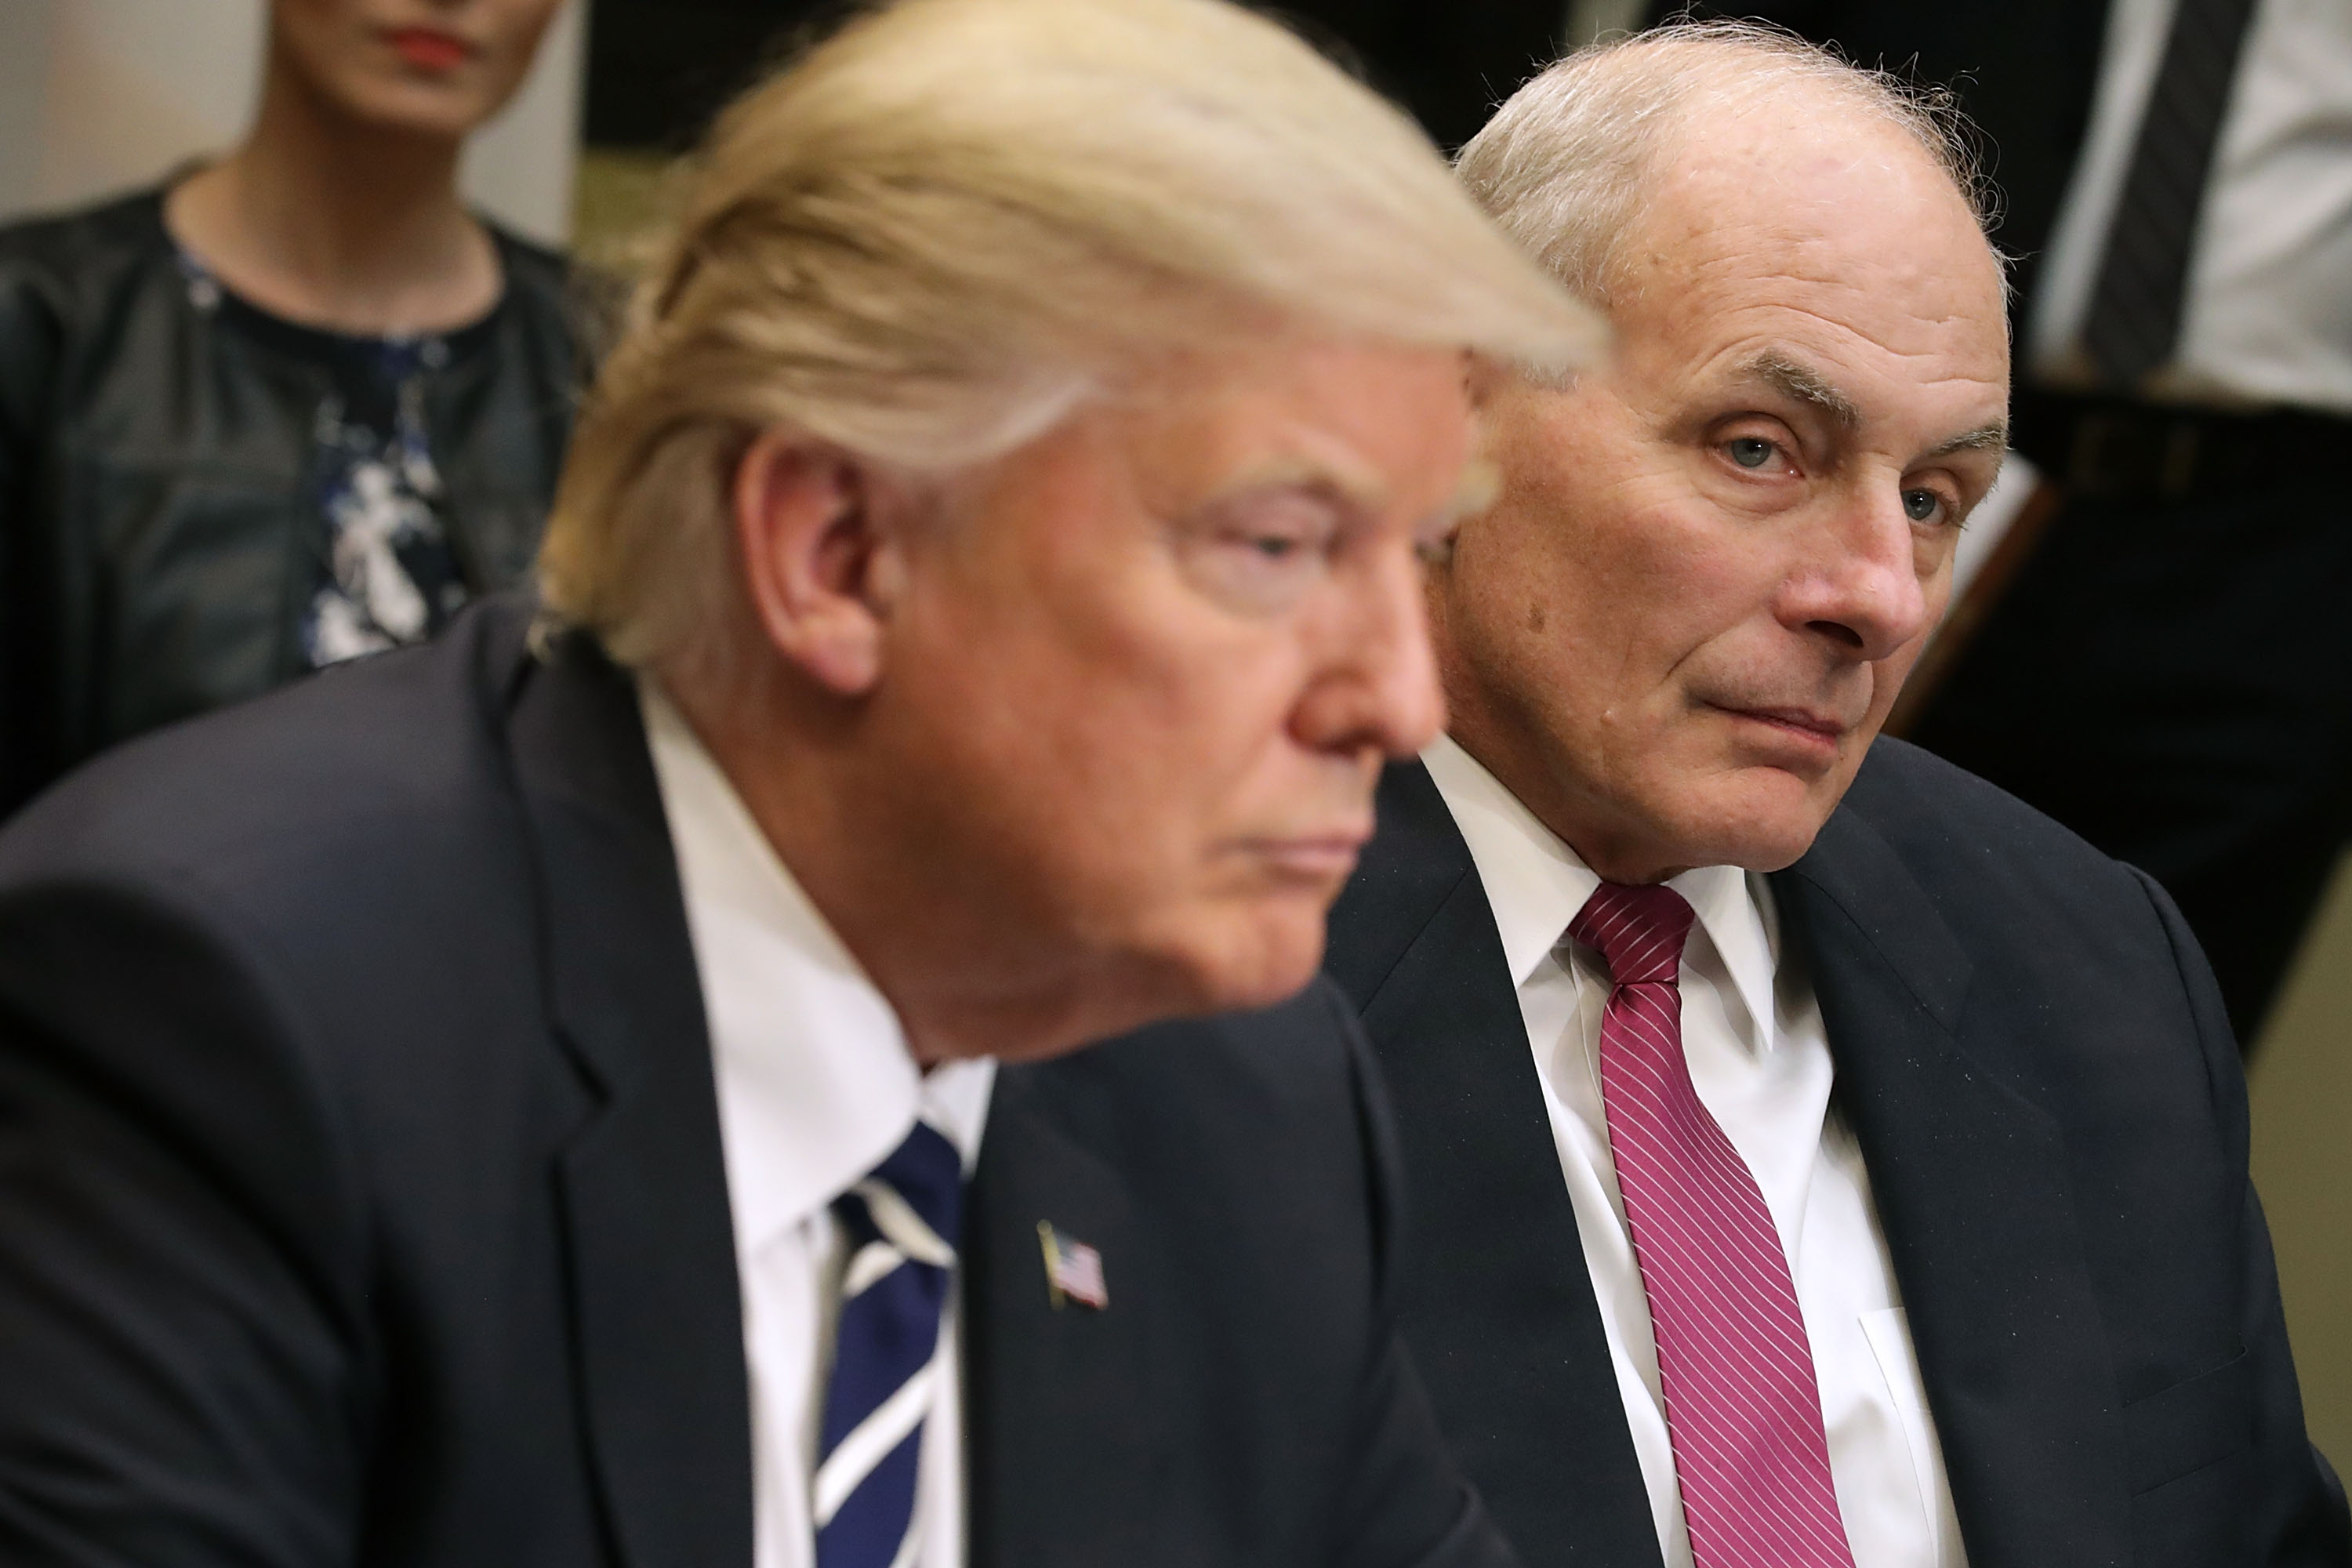 Everything you need to know about Trump's new chief of staff